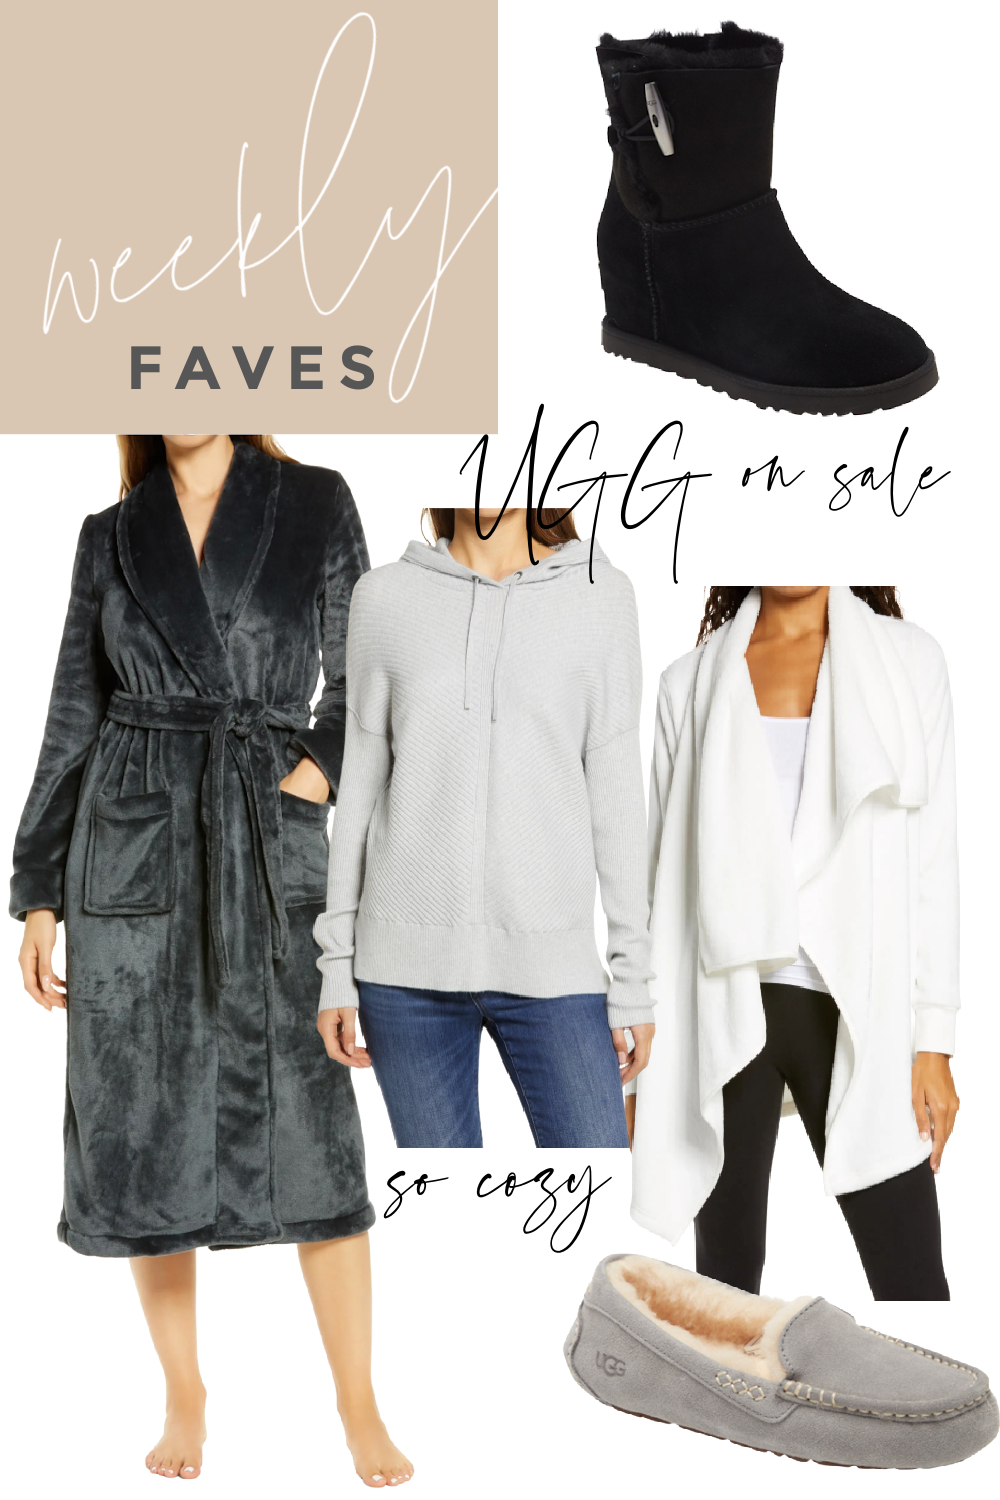 Weekly Faves 12.26.20